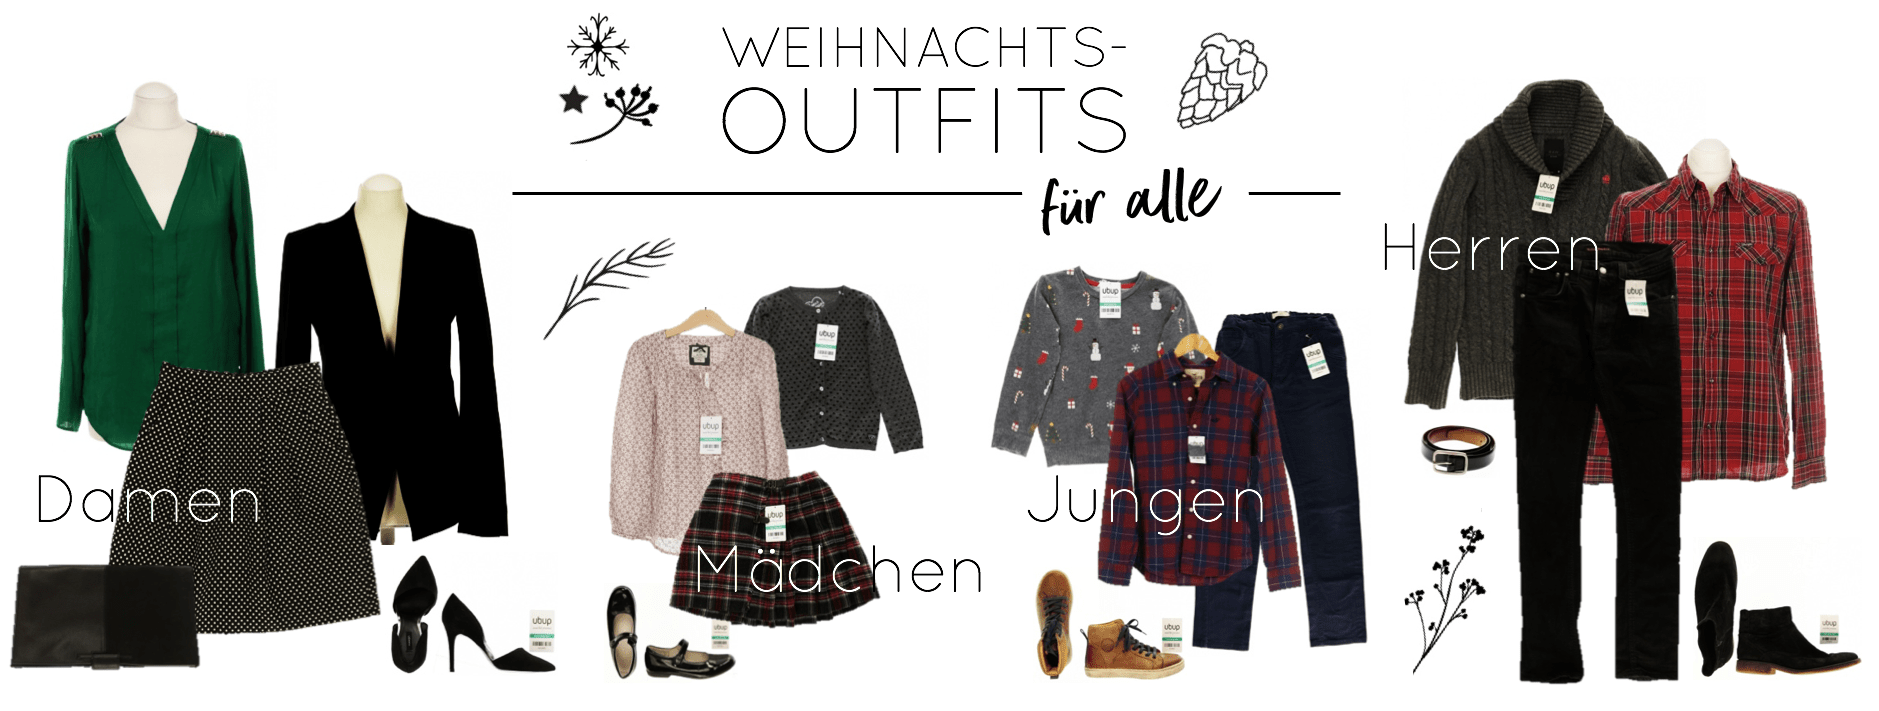 Weihnachtsoutfit - Get the Look